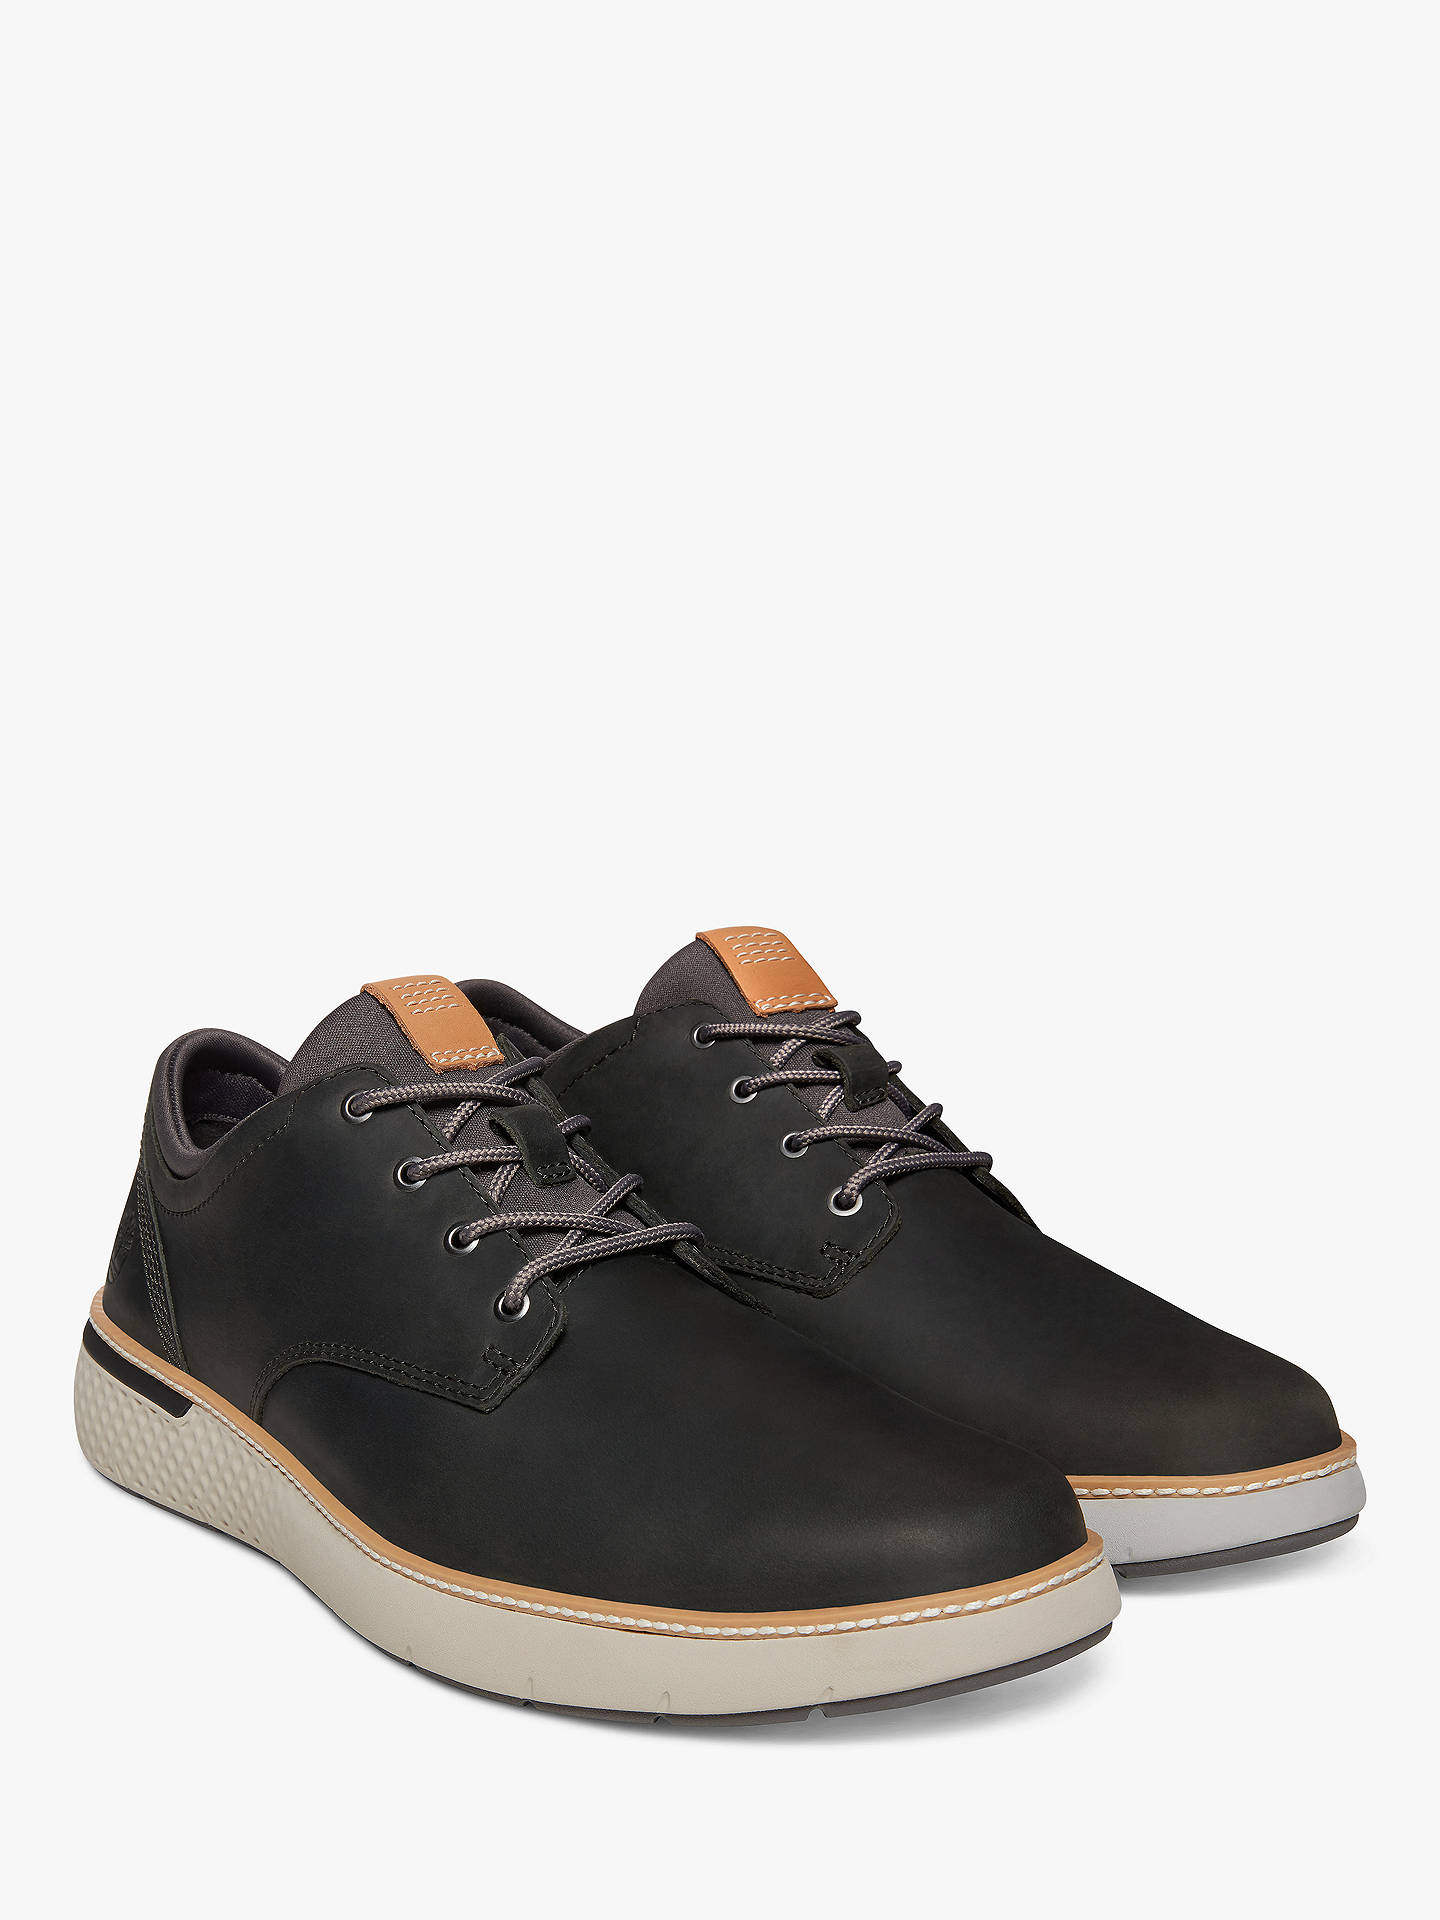 Buy Timberland Cross Mark Oxford Shoes, Pewter, 7 Online at johnlewis.com